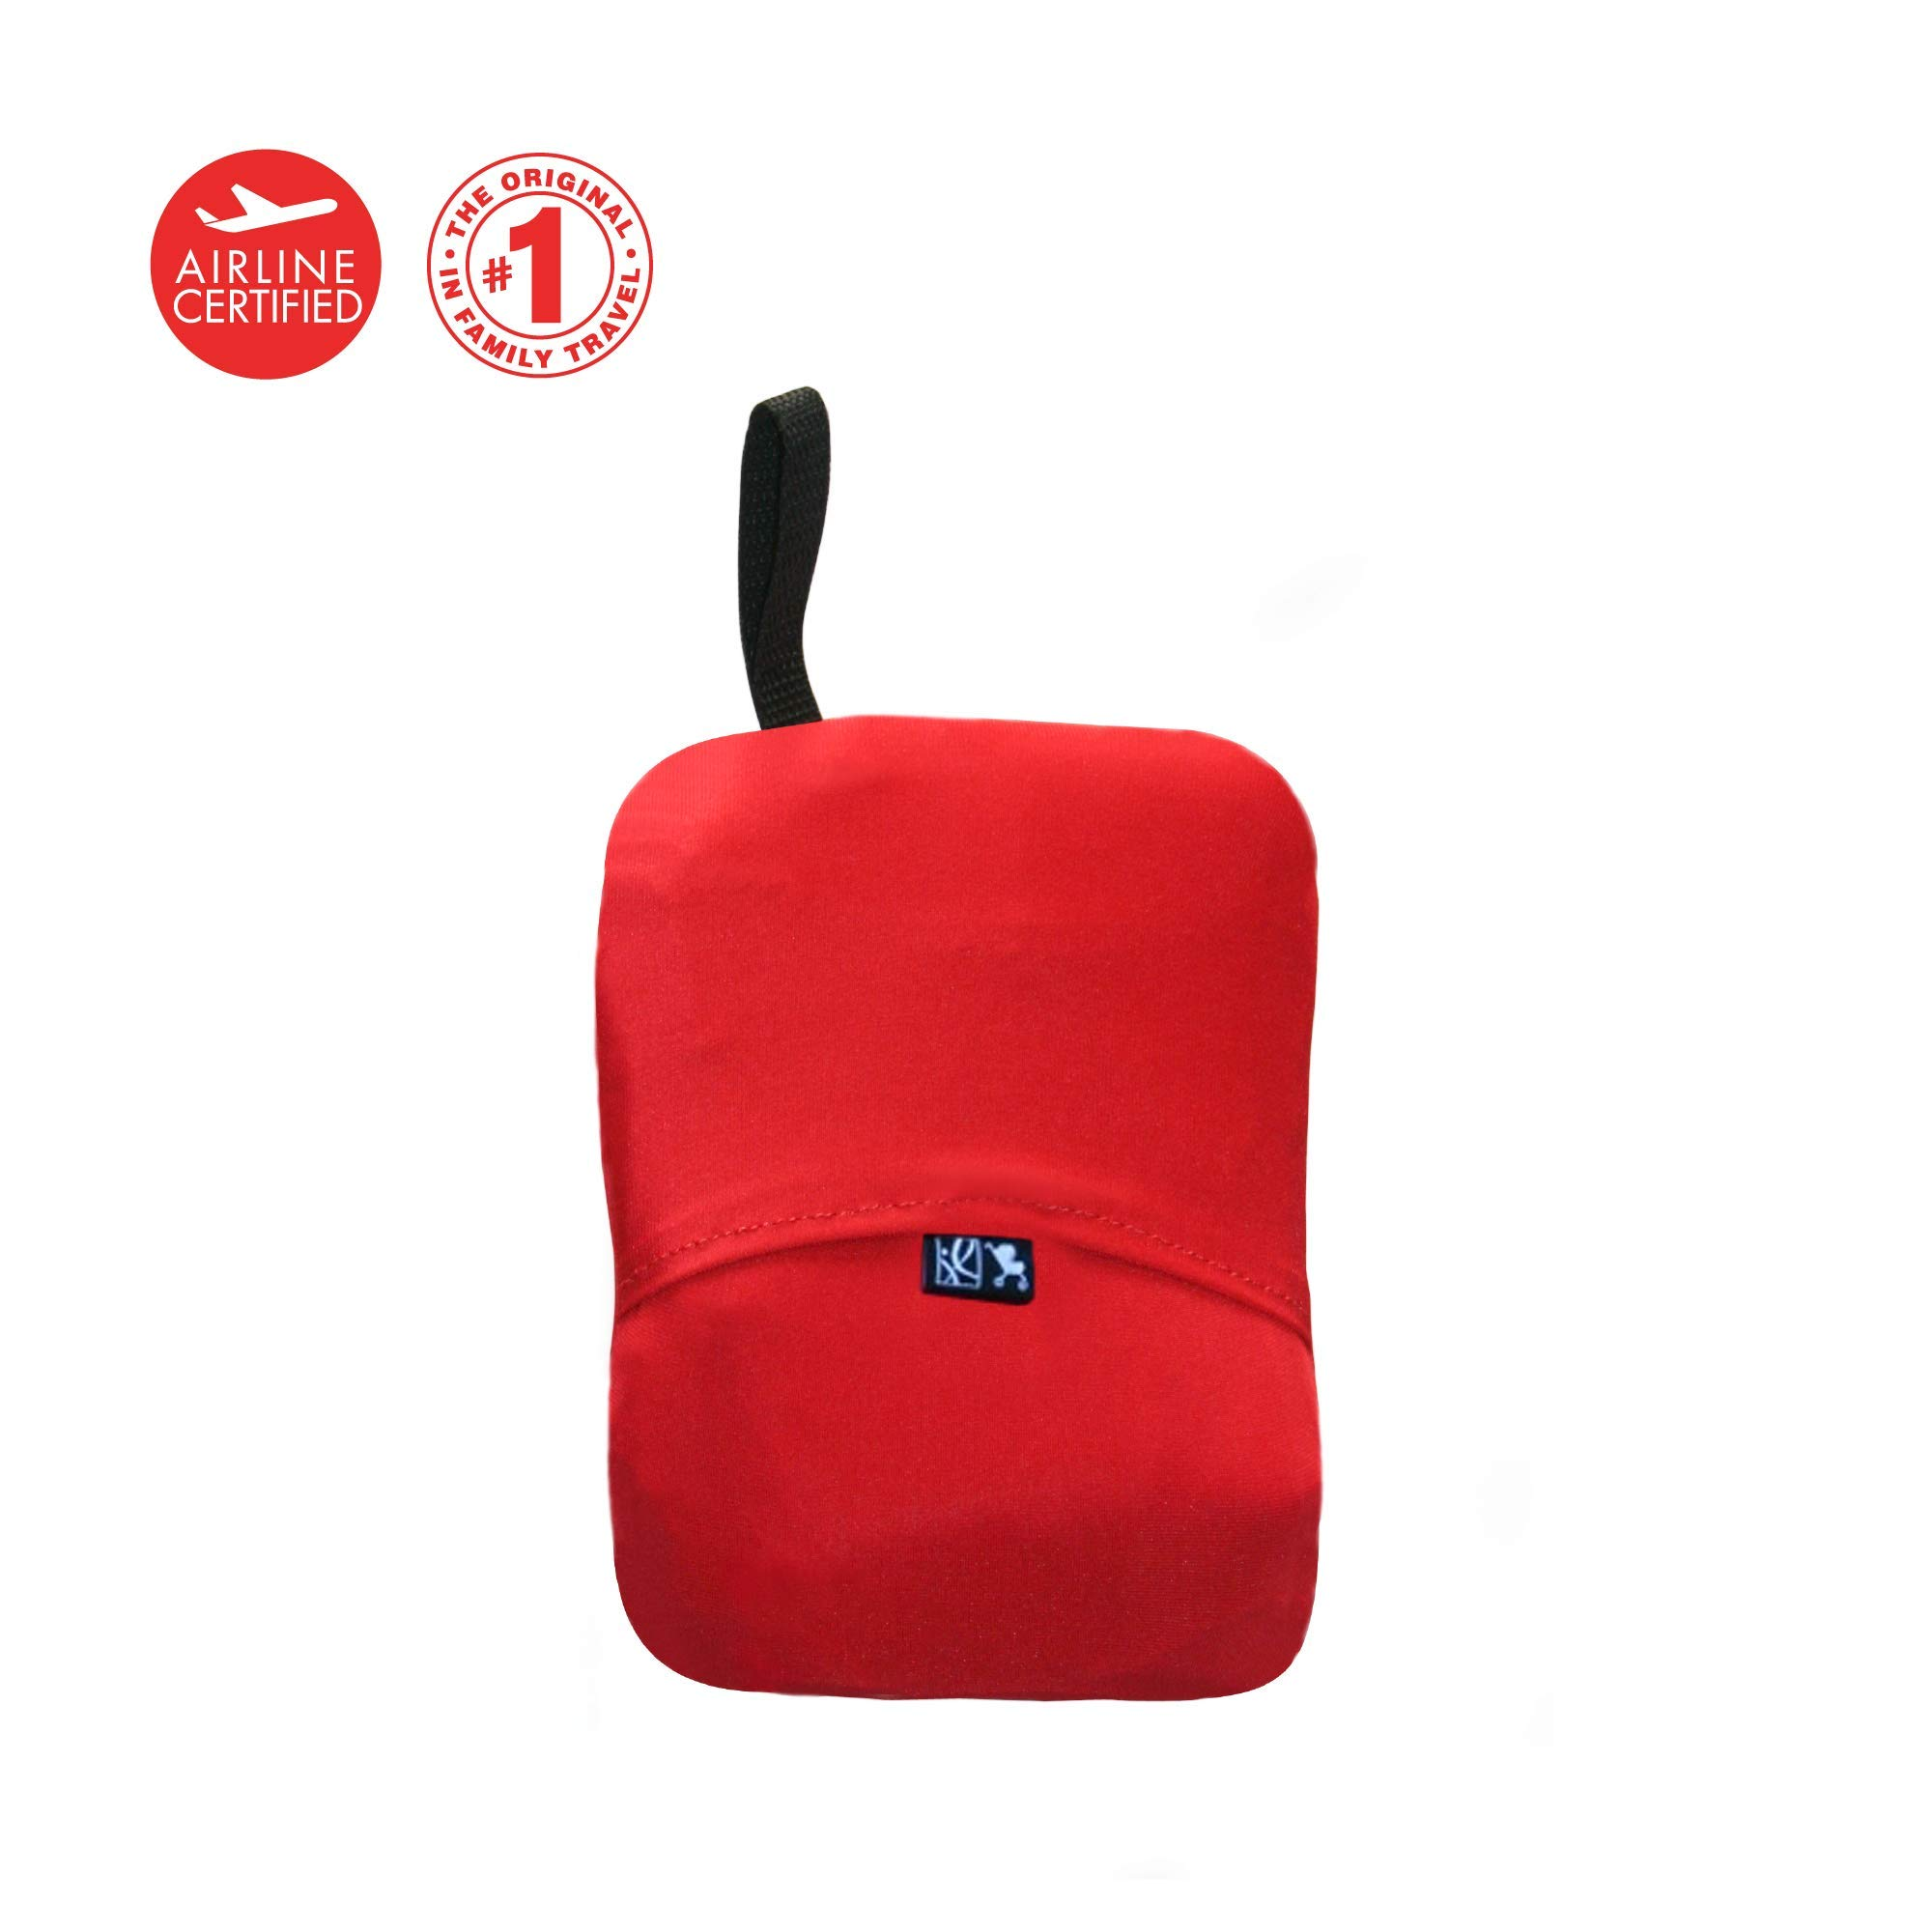 J.L. Childress Gate Check Bag For Standard and Double Strollers, Red by J.L. Childress (Image #4)